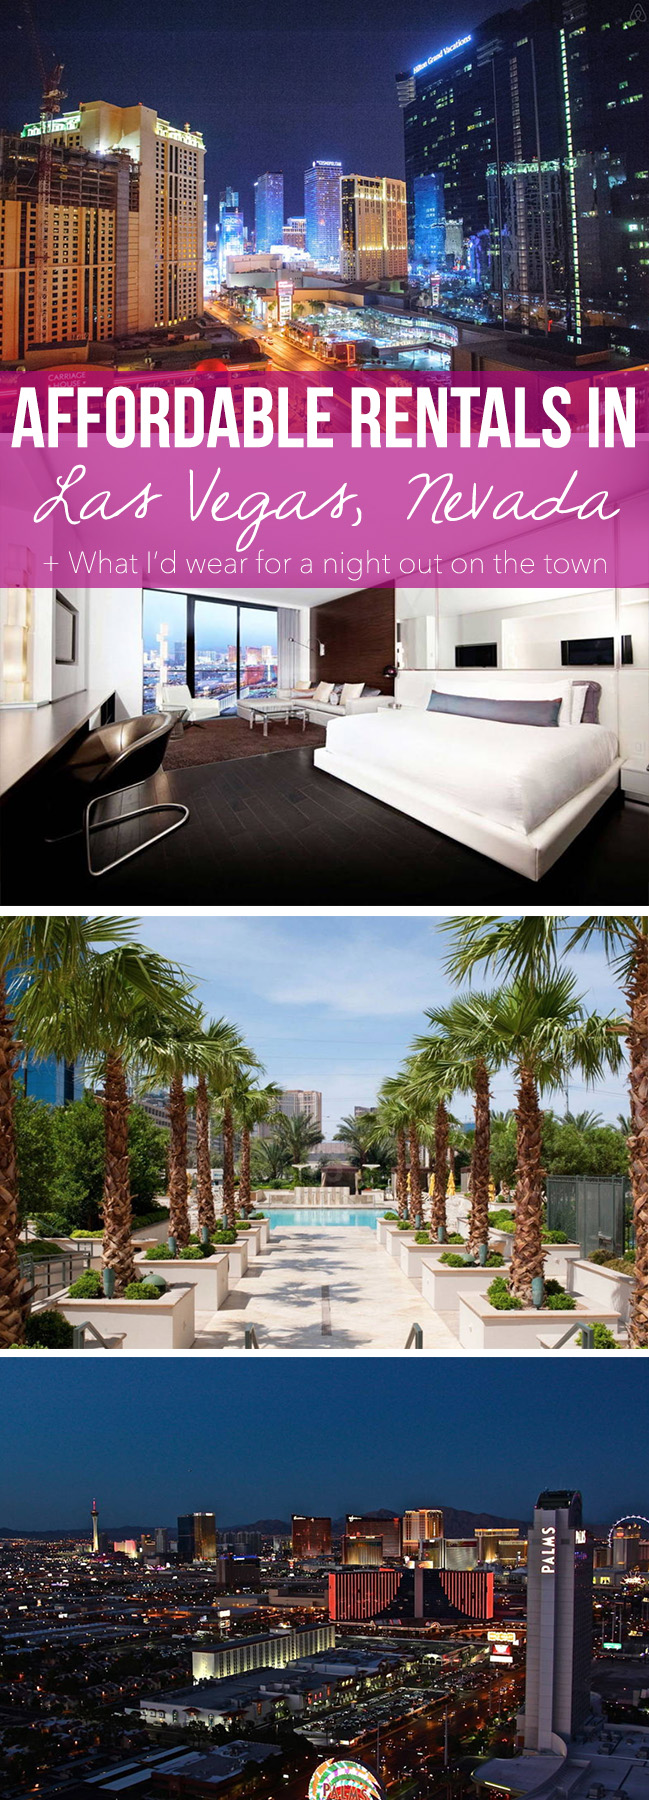 Affordable Rentals In Las Vegas Nevada What Id Wear For A Night